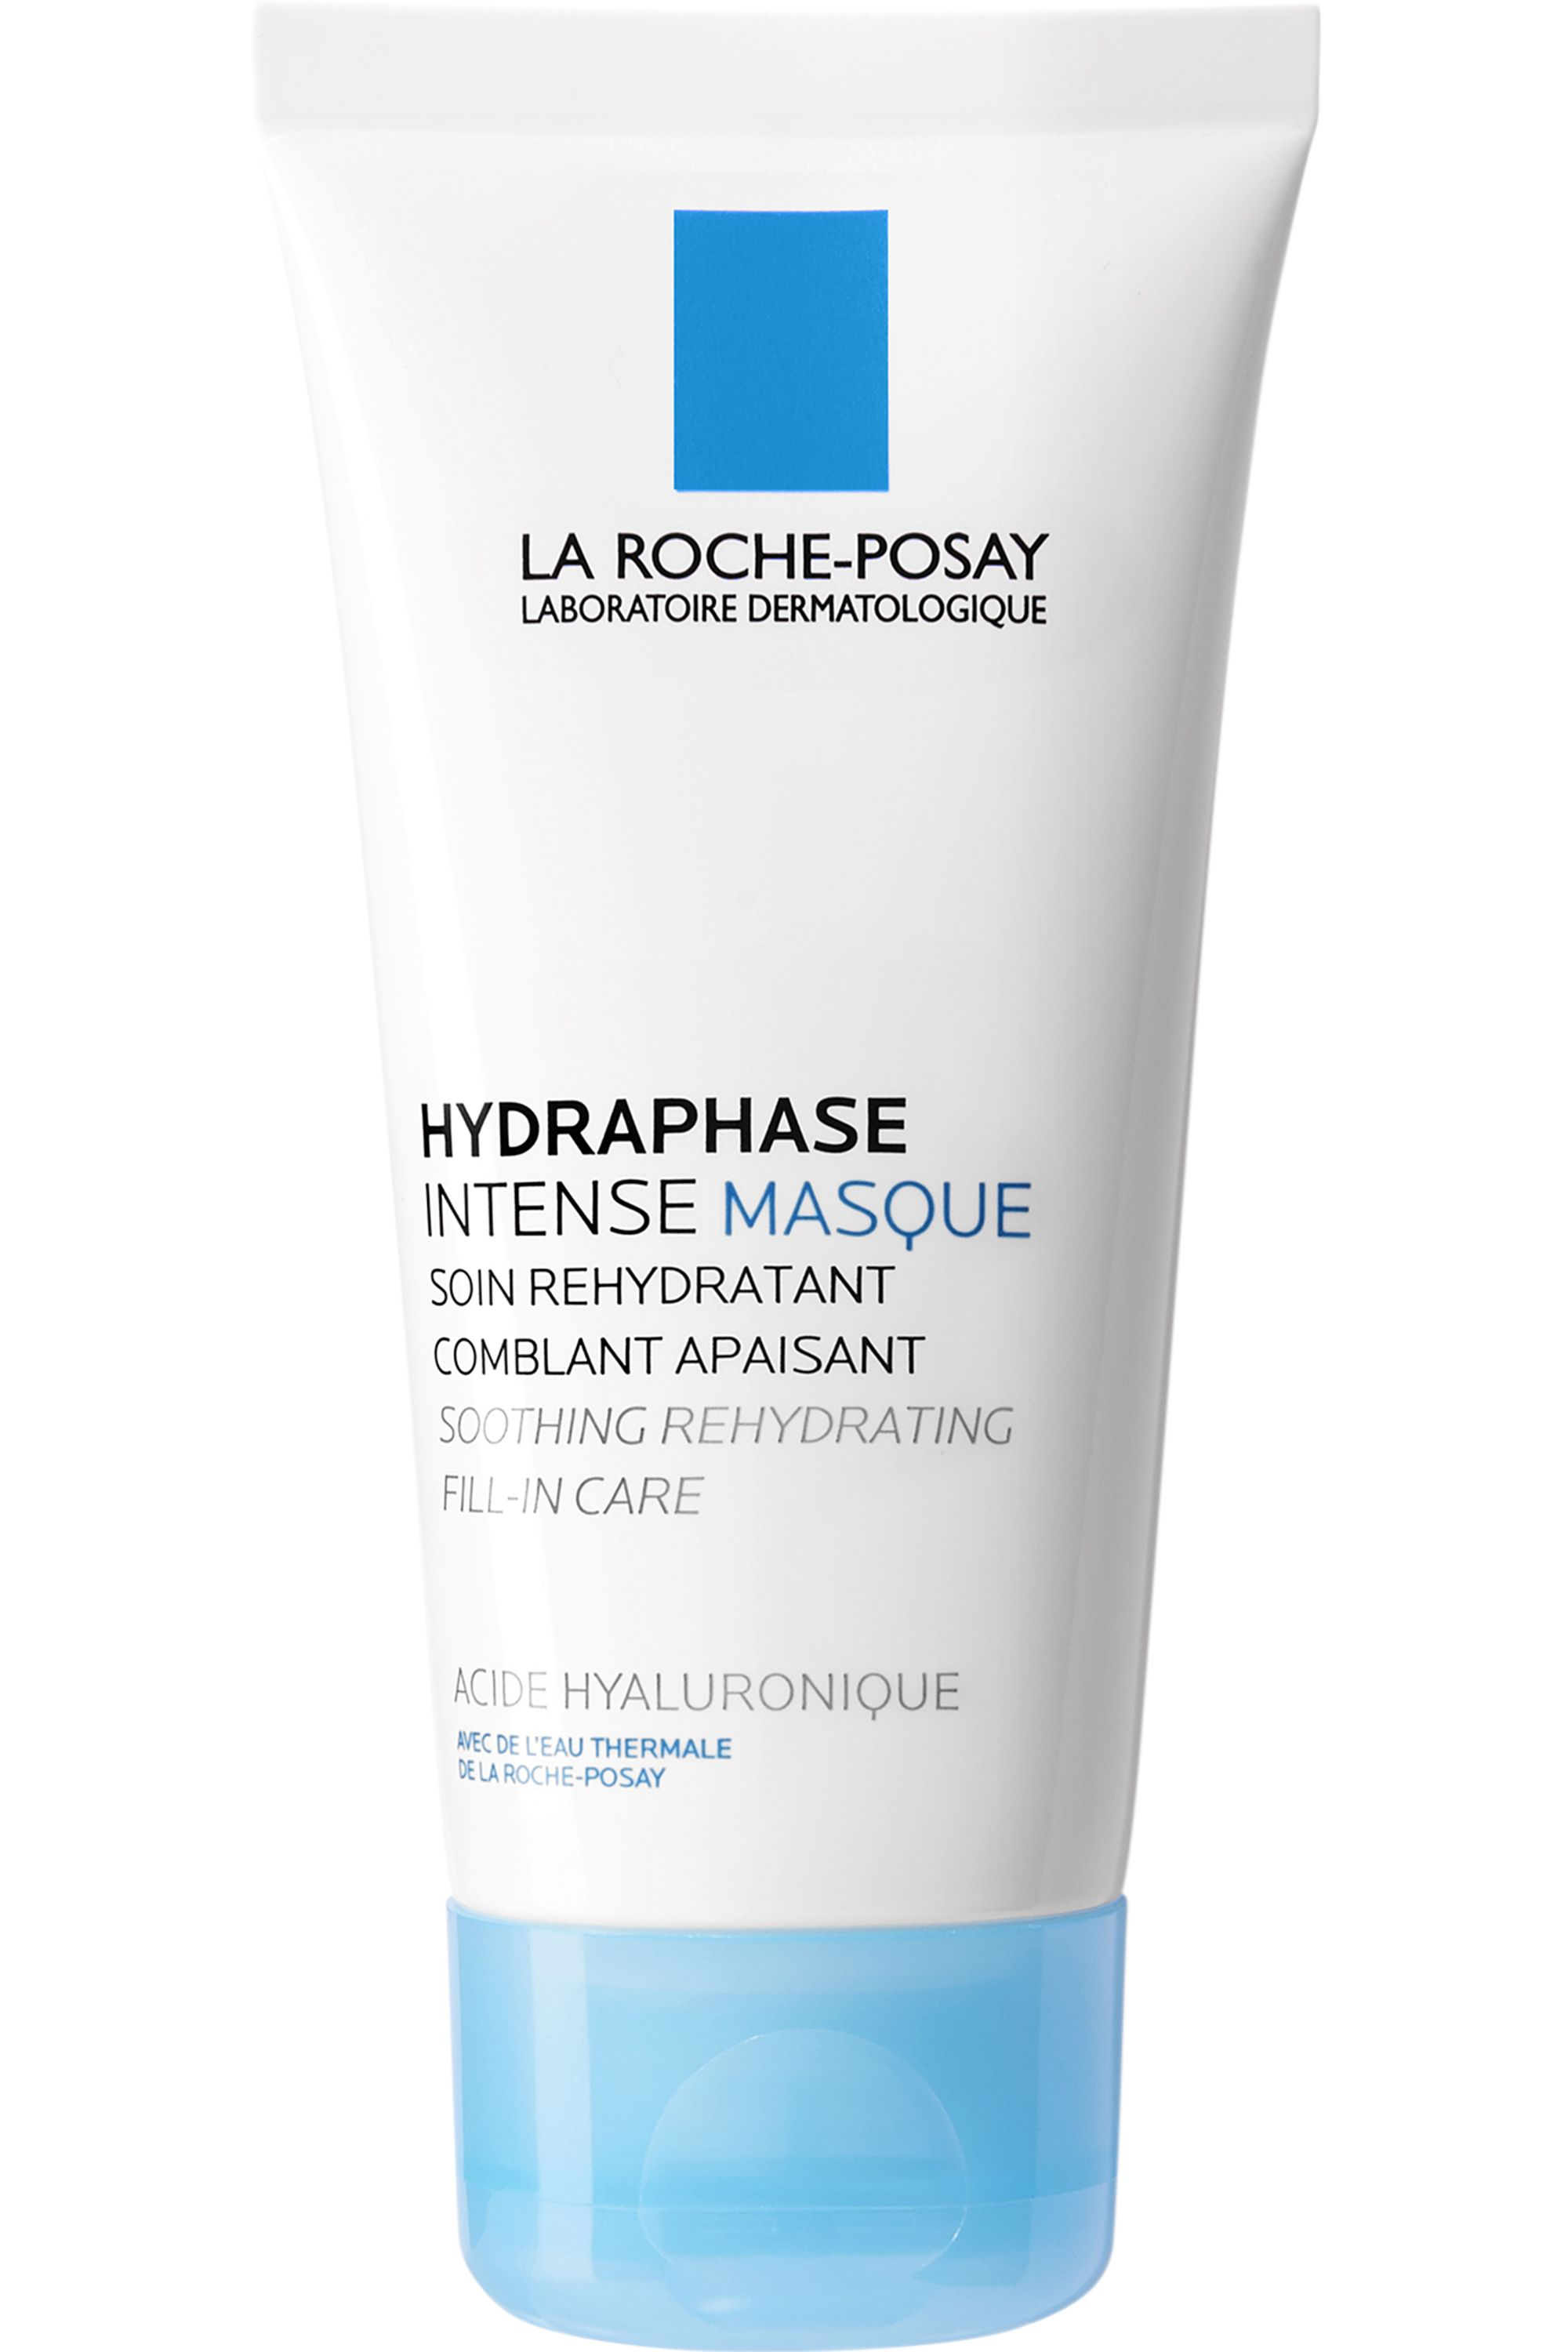 Blissim : La Roche-Posay - Masque Intense Hydraphase - Masque Intense Hydraphase